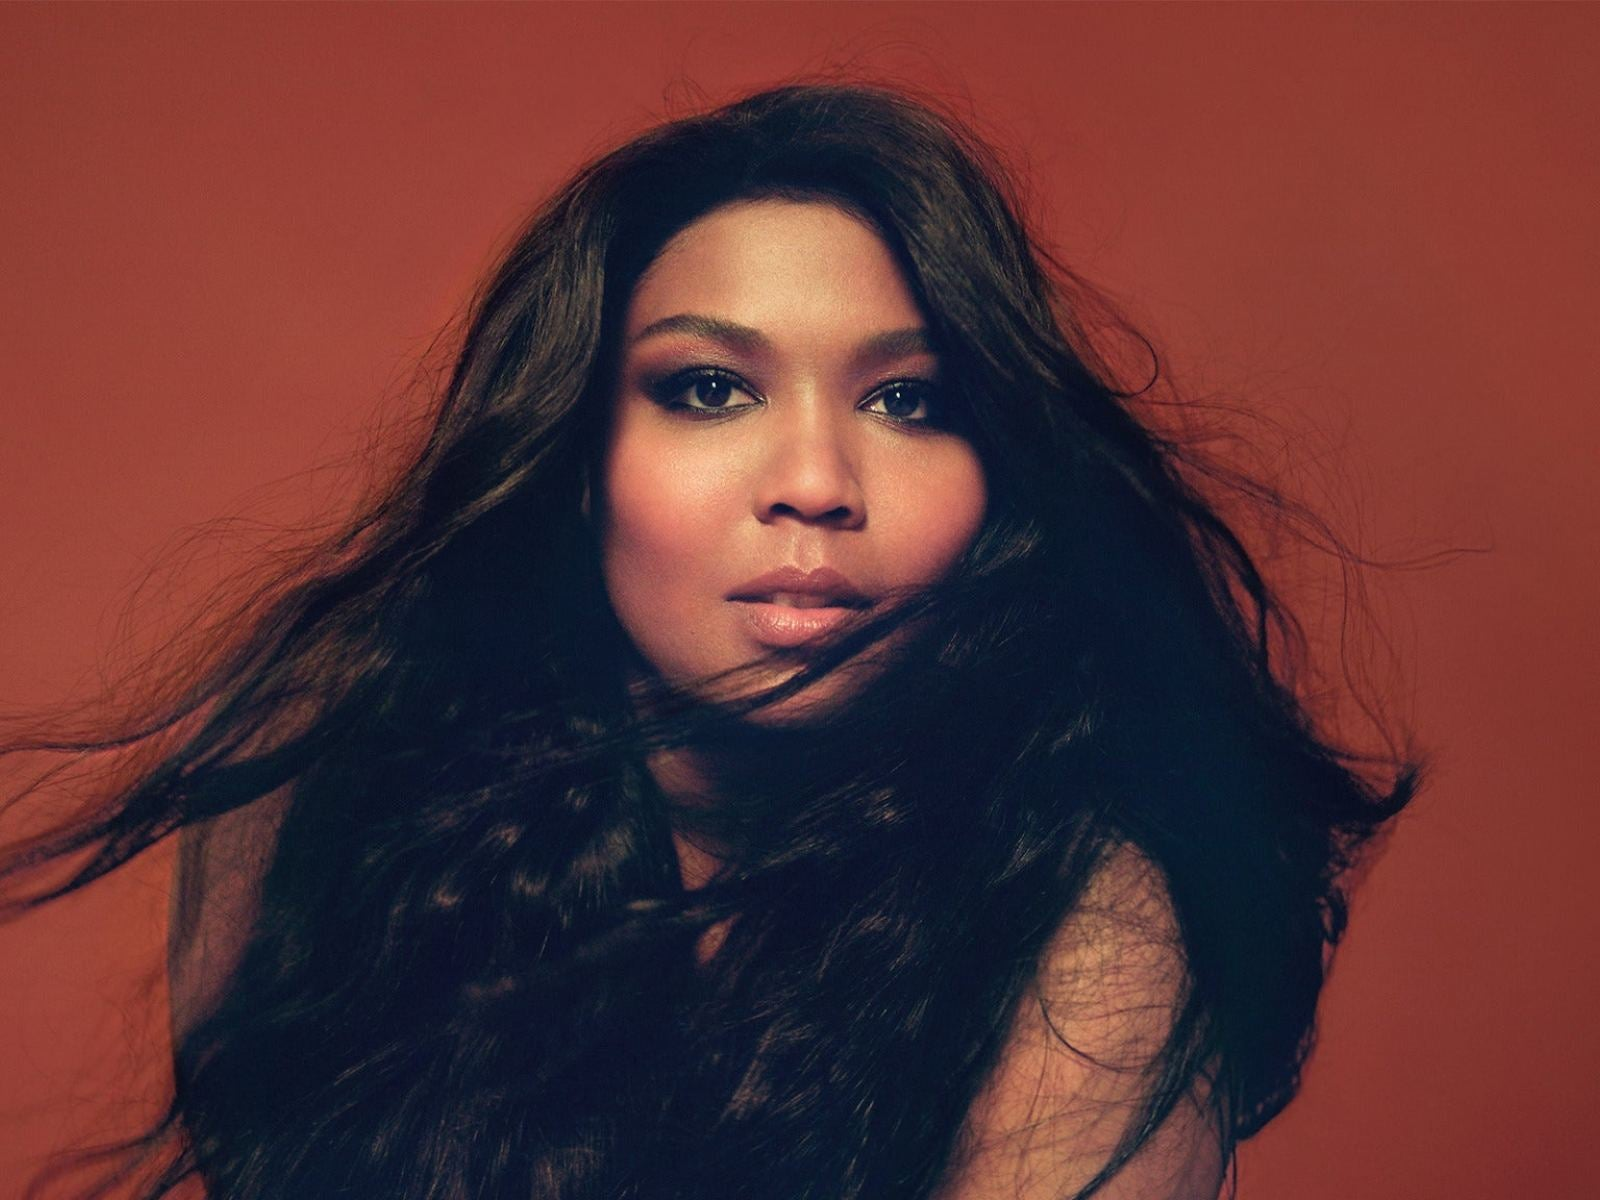 Main image for event titled Lizzo